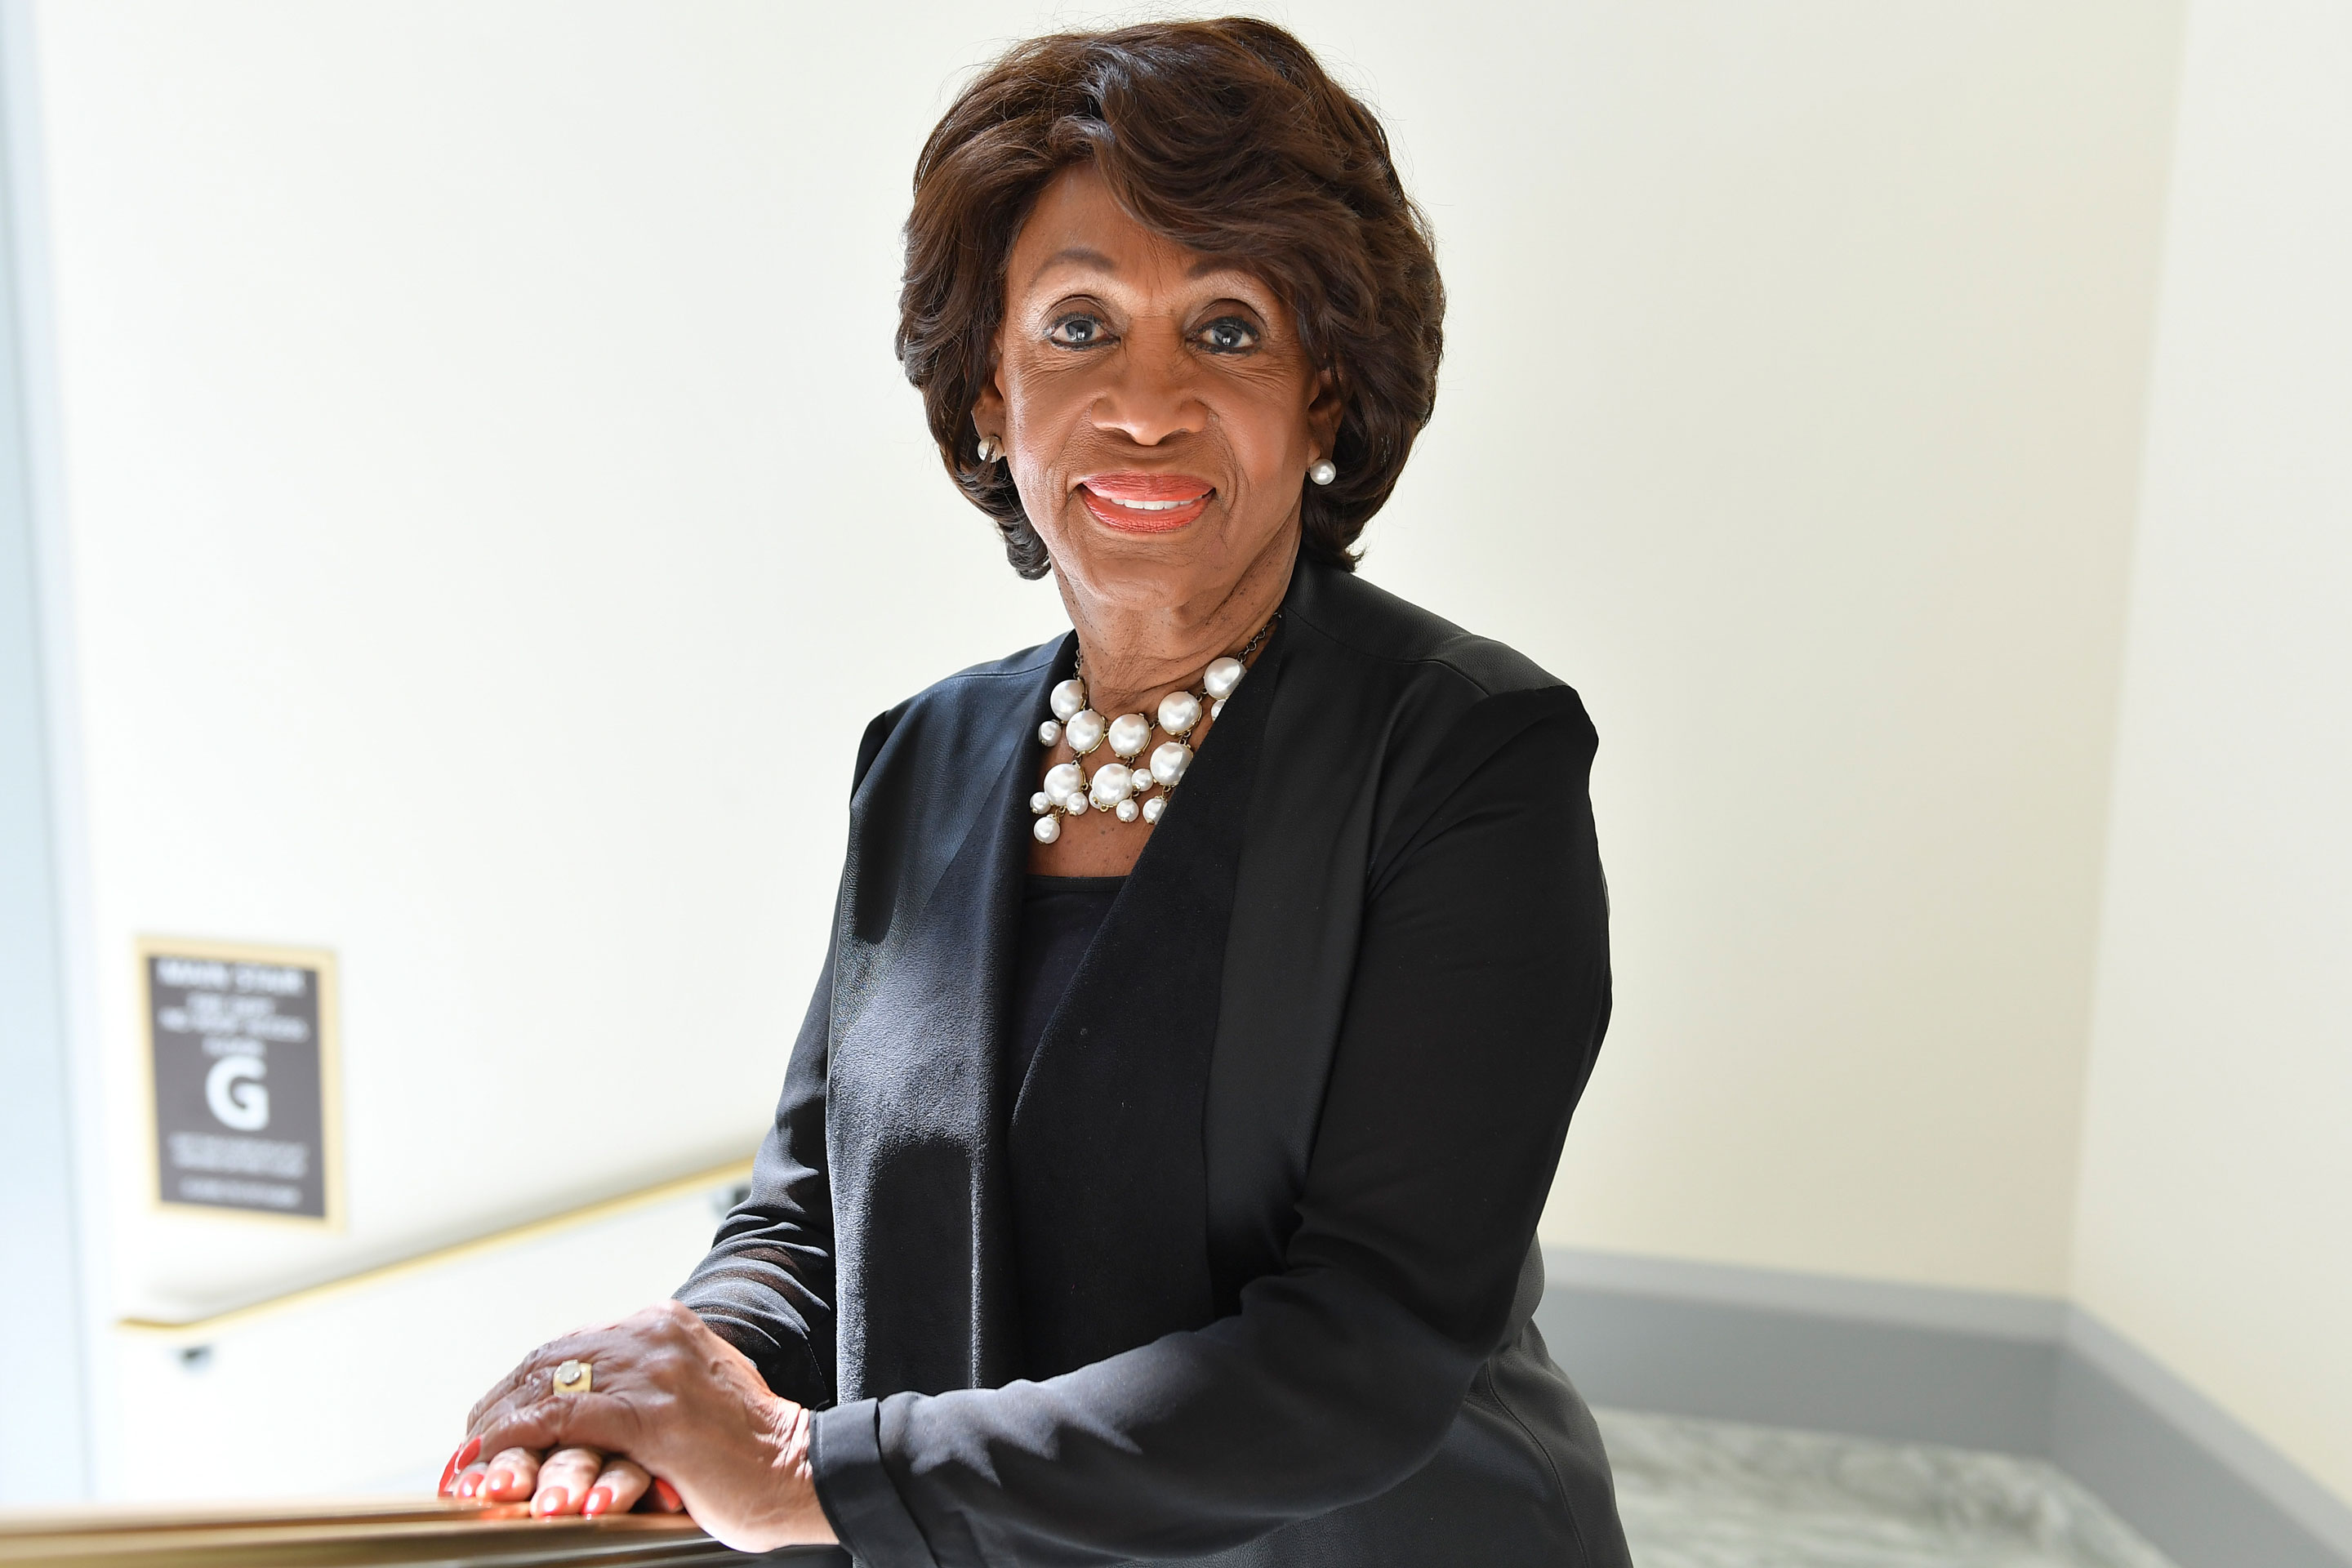 Rep. Maxine Waters (D-CA) poses for at the Rayburn House Office Building in Washington, D.C., in 2017.